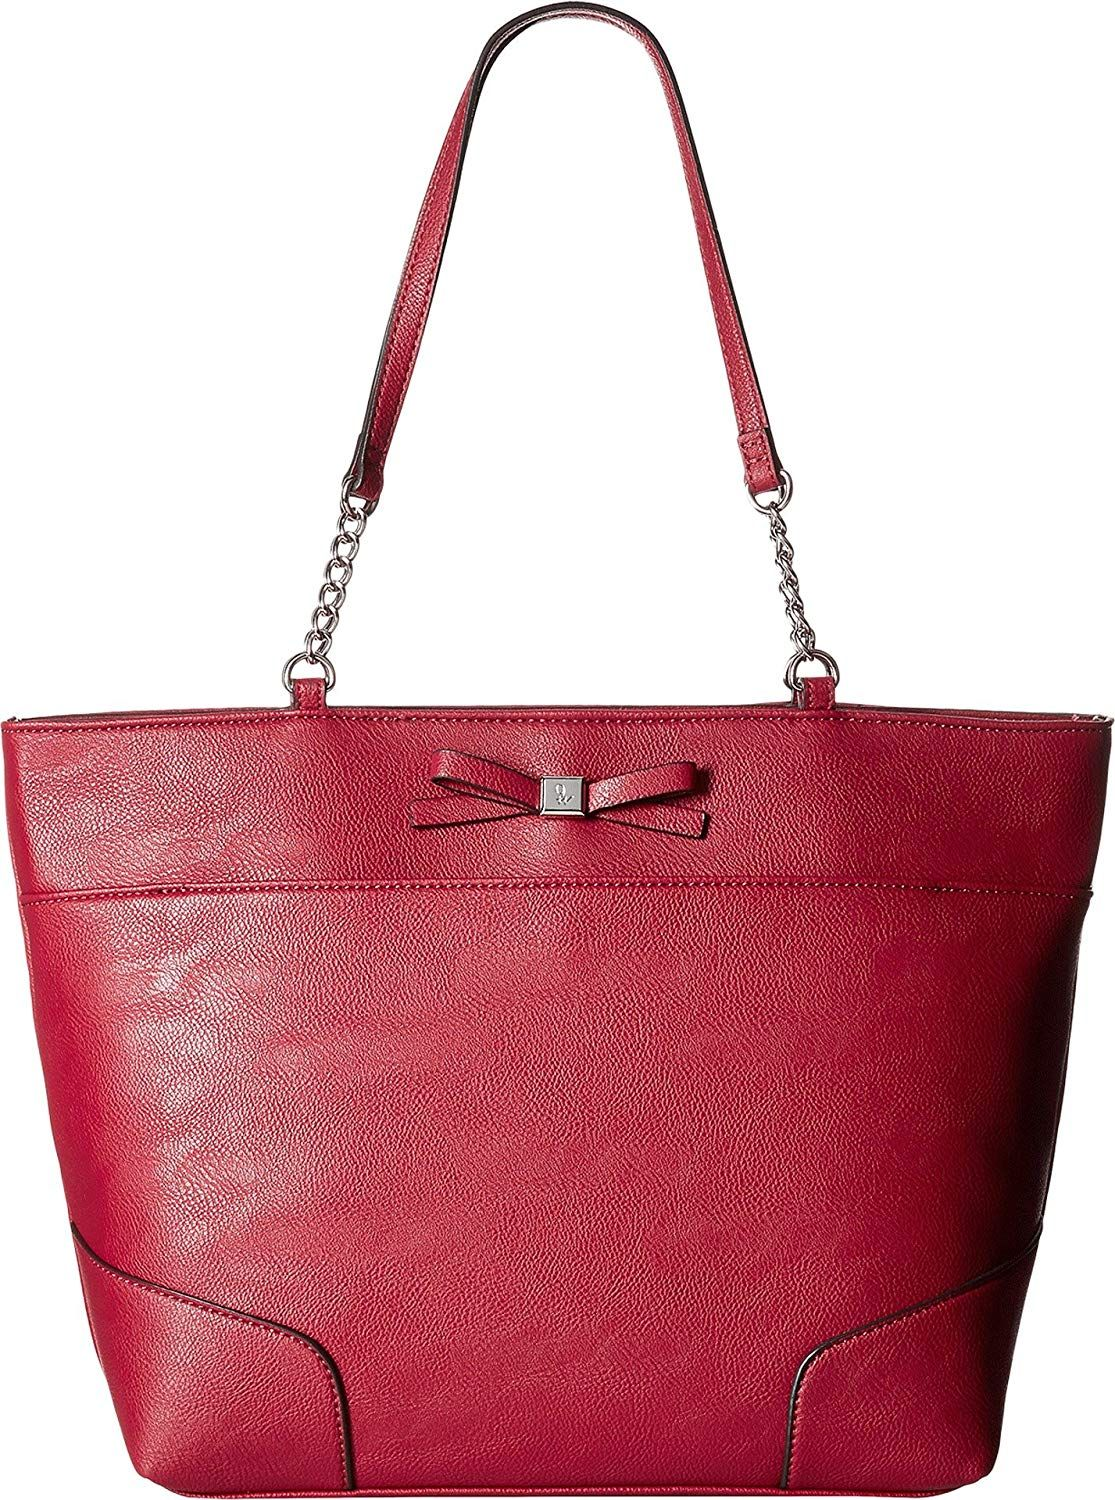 Nine West Women S Cyra Tote Ruby Red One Size Shoes